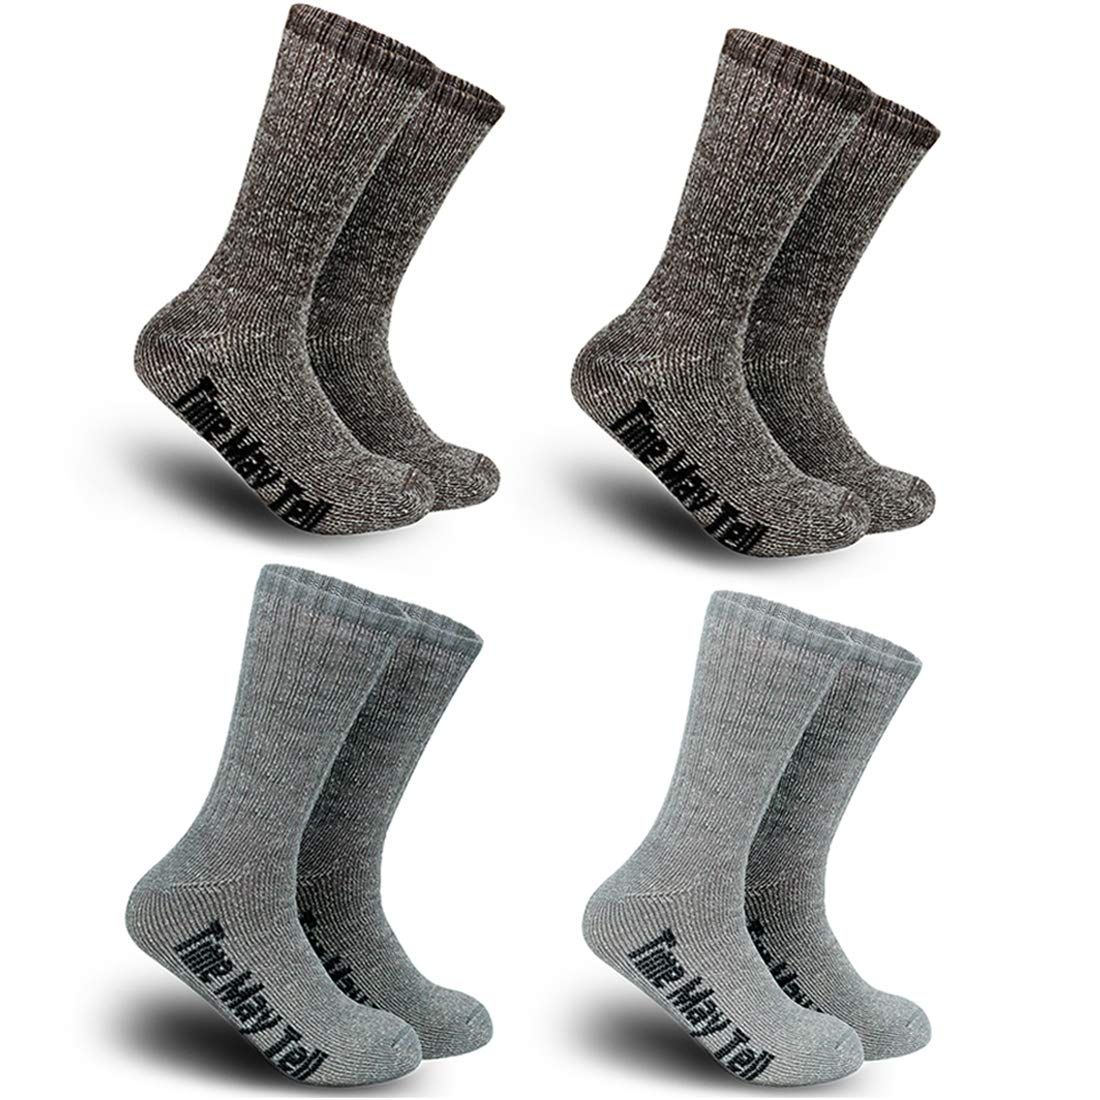 Time May Tell Mens Merino Wool Hiking Cushion Socks Pack (2/4 Pair,6-13 Size) (2Brown,Light Grey,Dark Grey(4 pairs),US Size 9.5~13) ... by Time May Tell